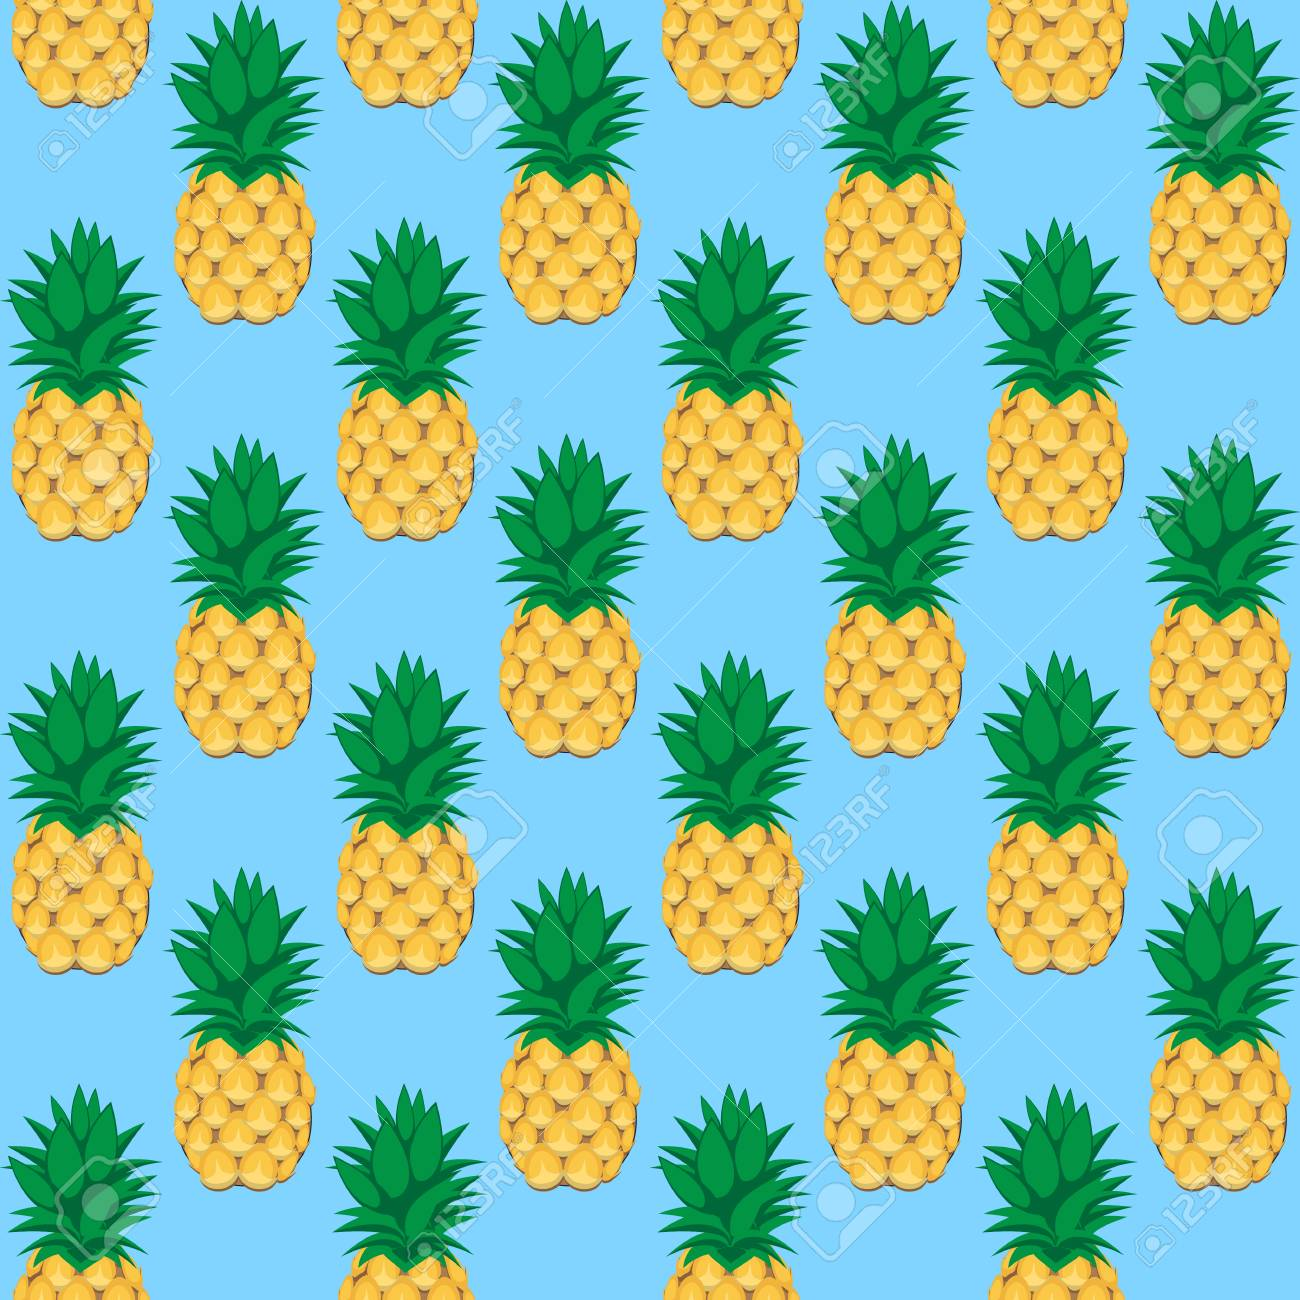 93462380 a pineapple fruit contour abstract seamless pattern on aqua blue background for wallpaper pattern we